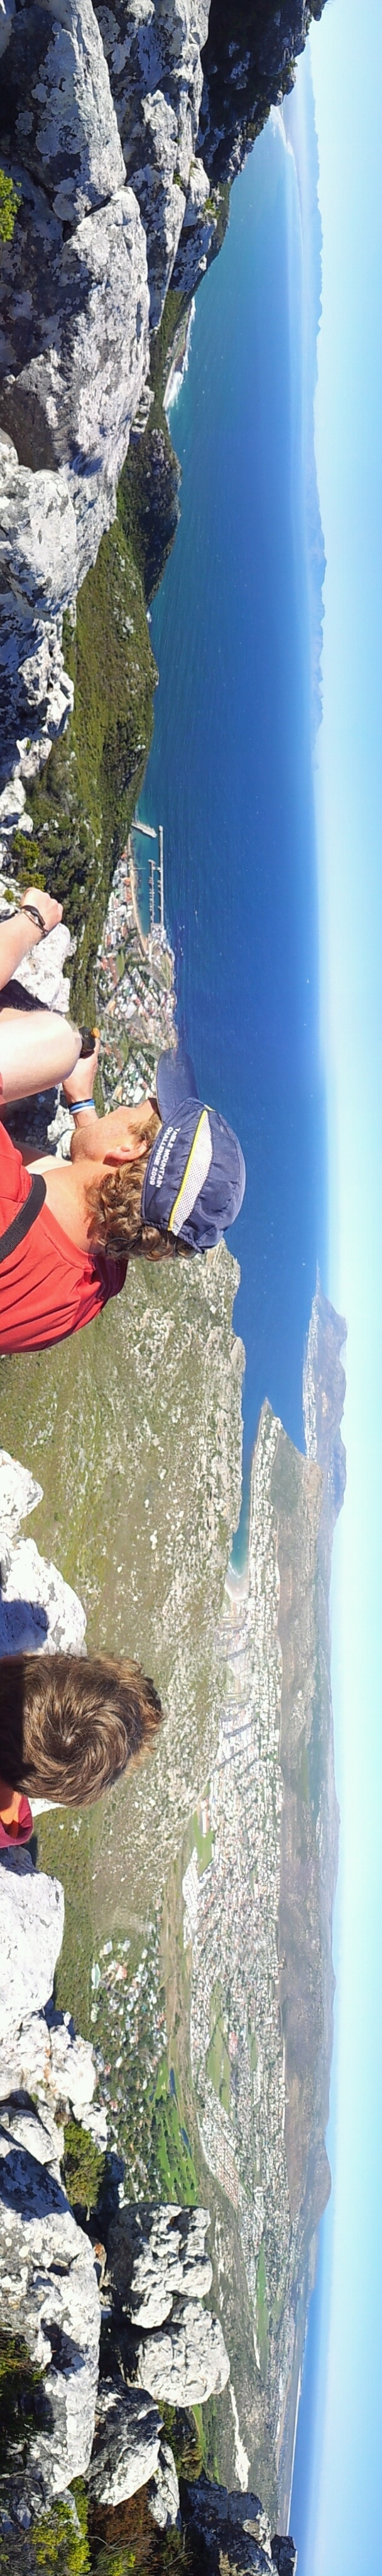 On top of the mountain in Kalk bay in Cape townFavorite Places, Kalk Bays, Capes Town, Dreams Spaces, Cape Town